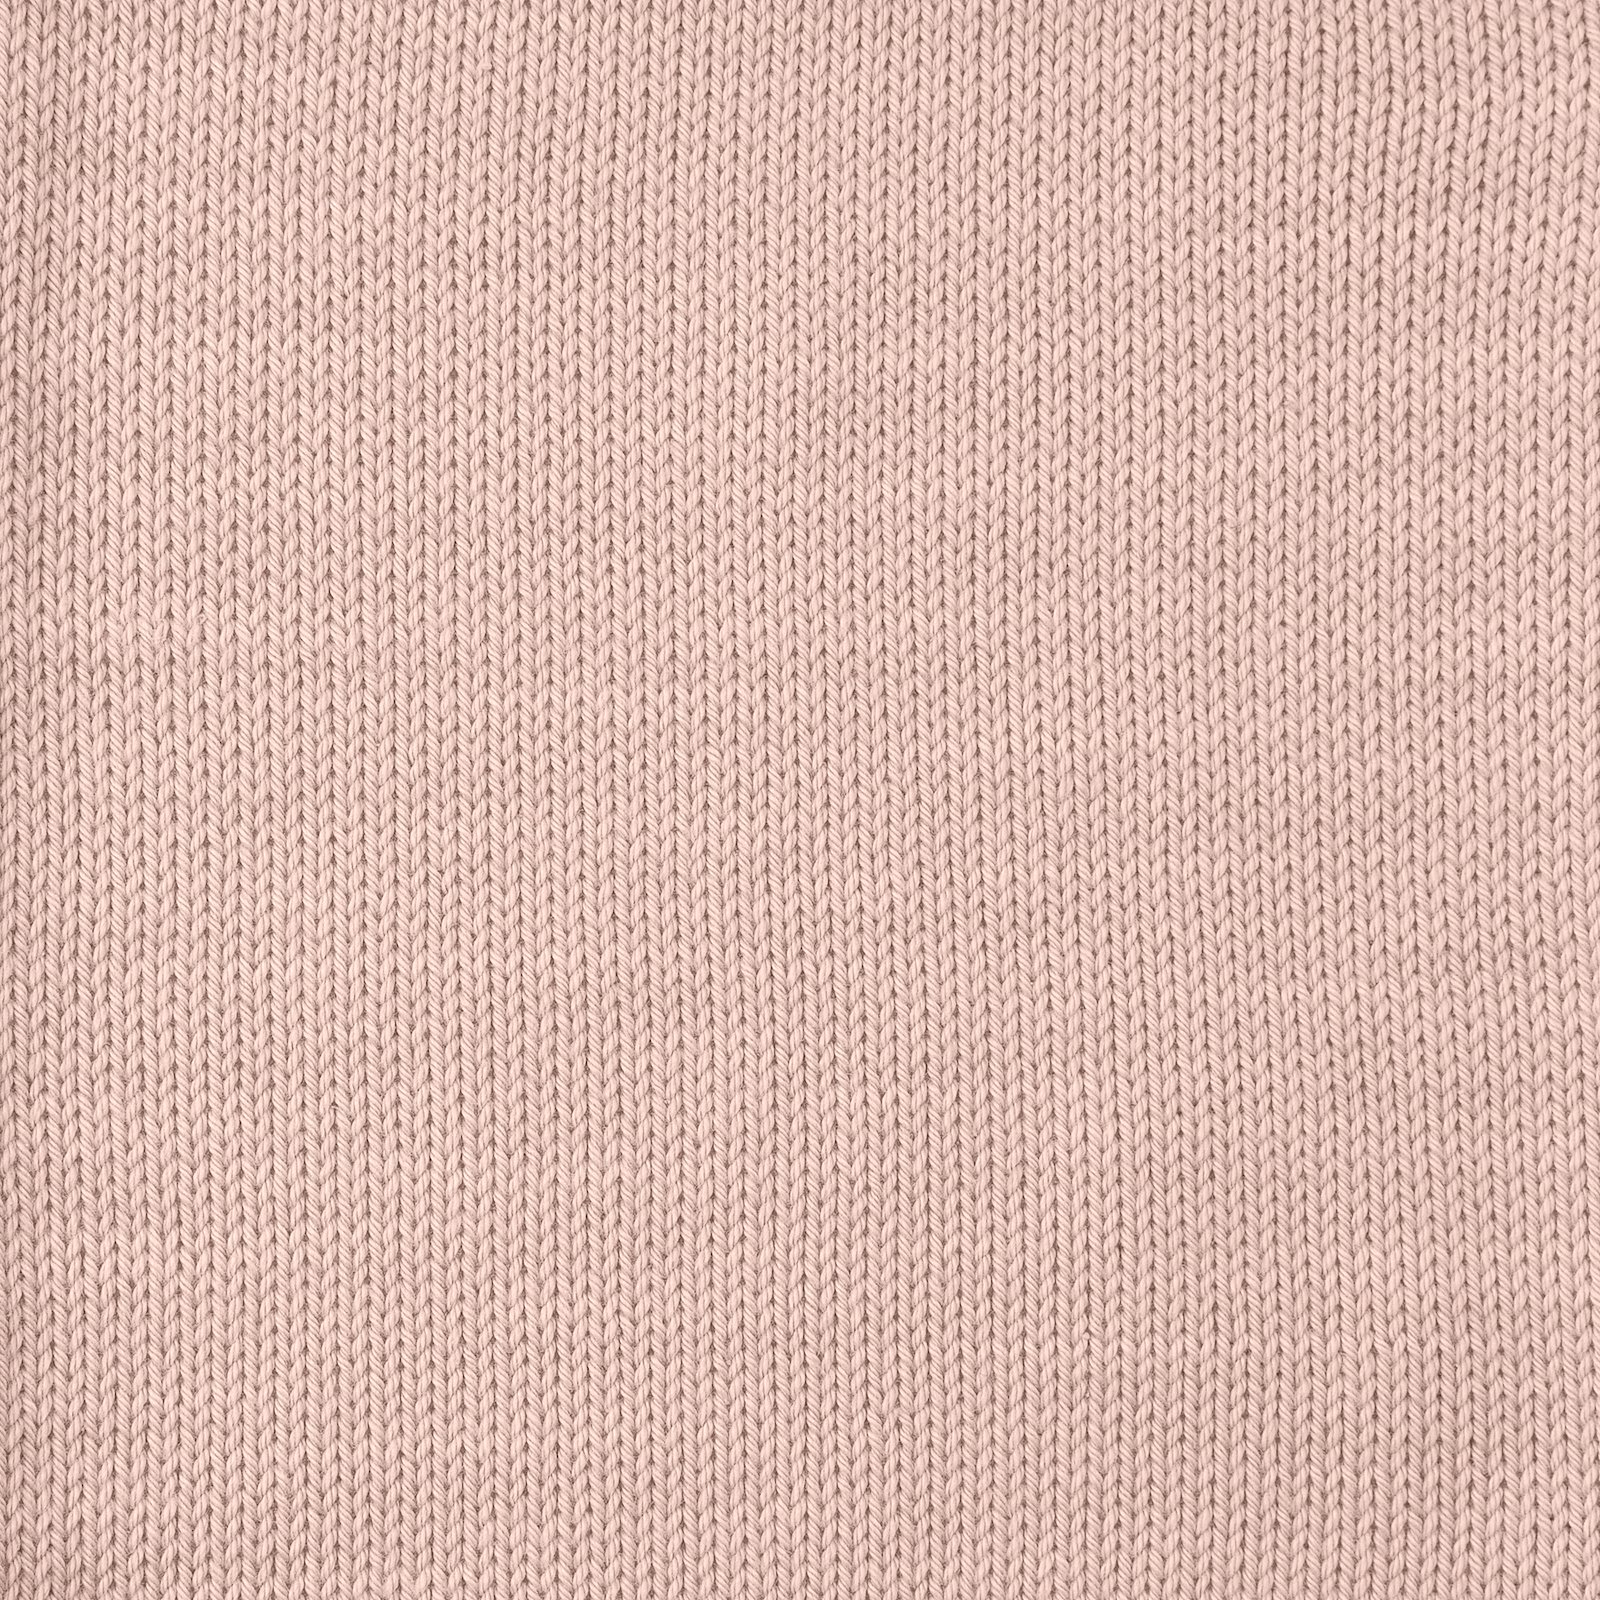 Colourful dusty rose 50g 90060089_sskit